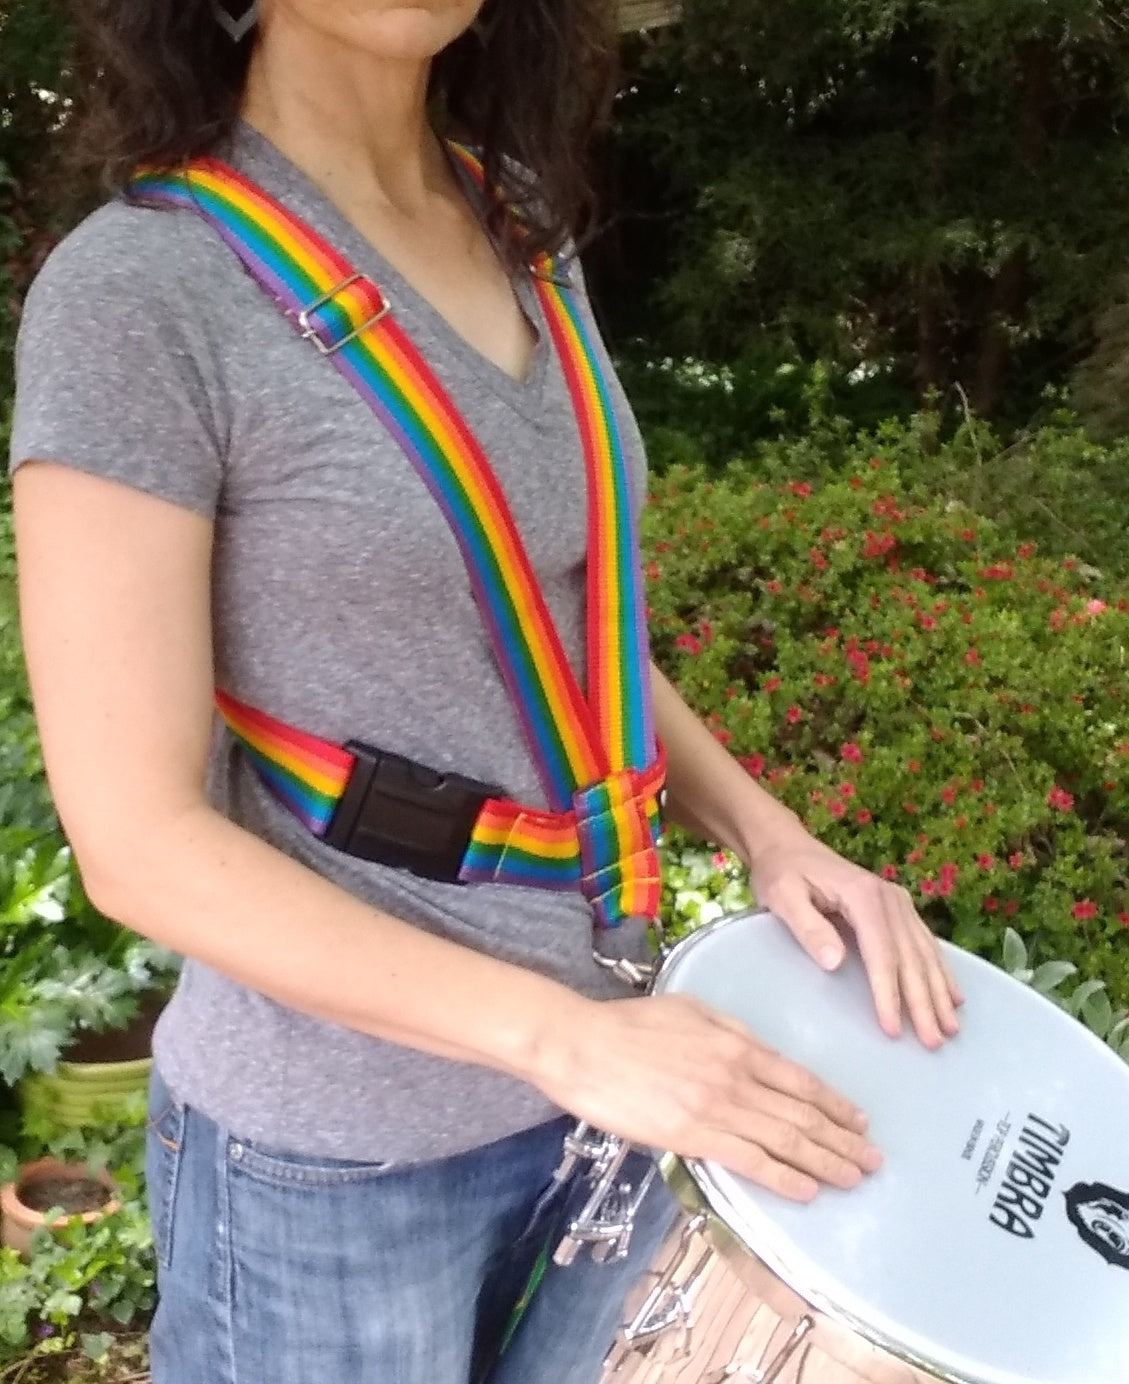 Side view of rainbow timbal strap by Macapart with Timbra timbal